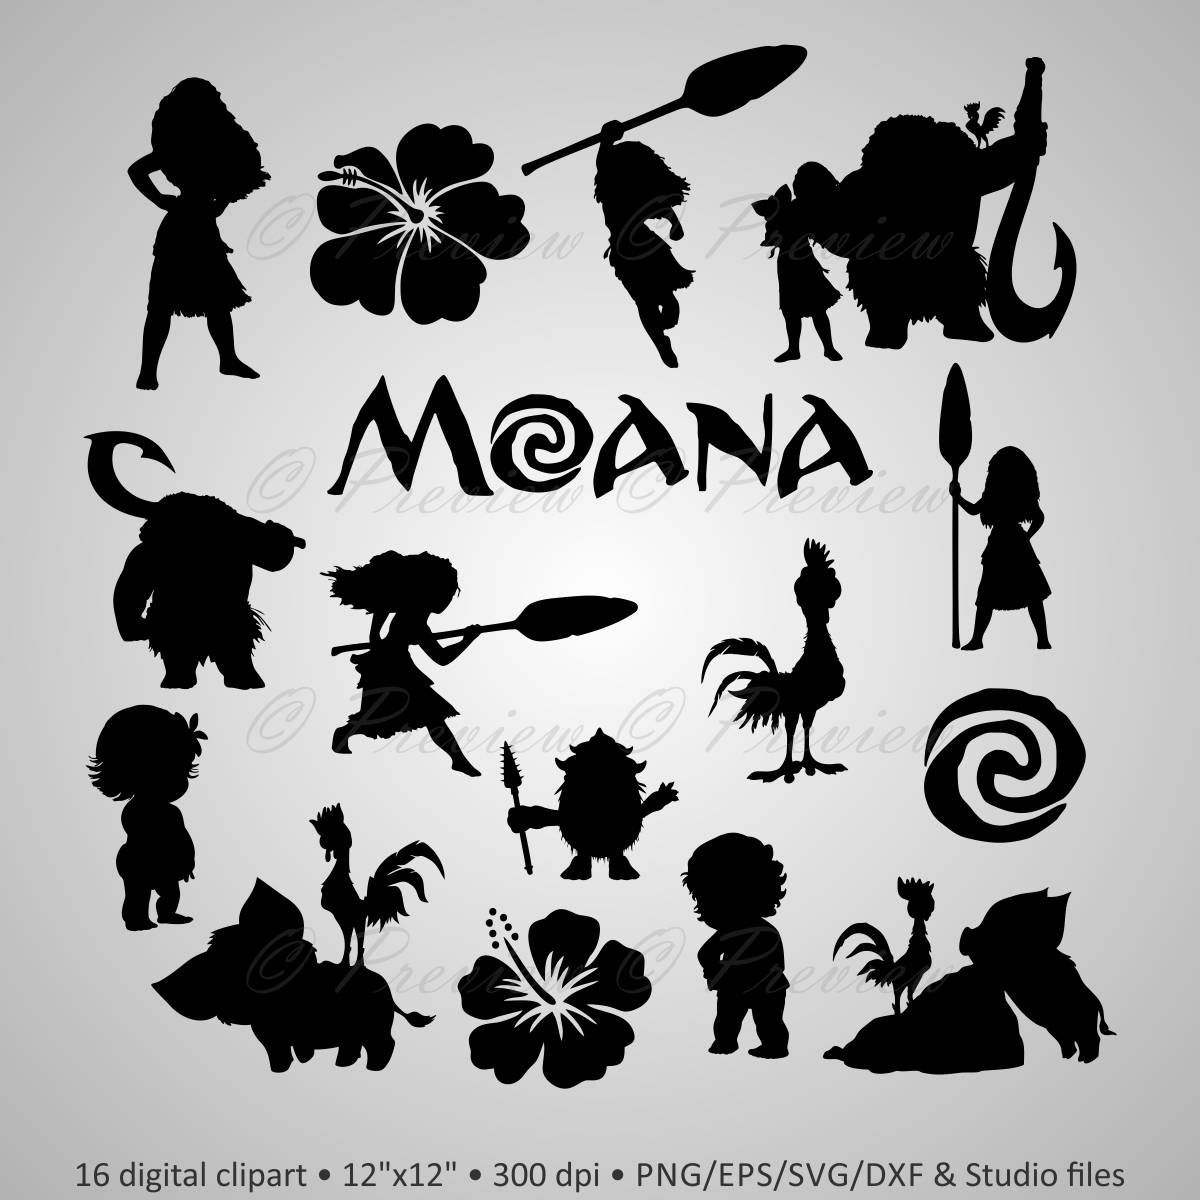 Image Result For Moana Svg Free Disney Silhouette Art Disney Silhouettes Digital Clip Art